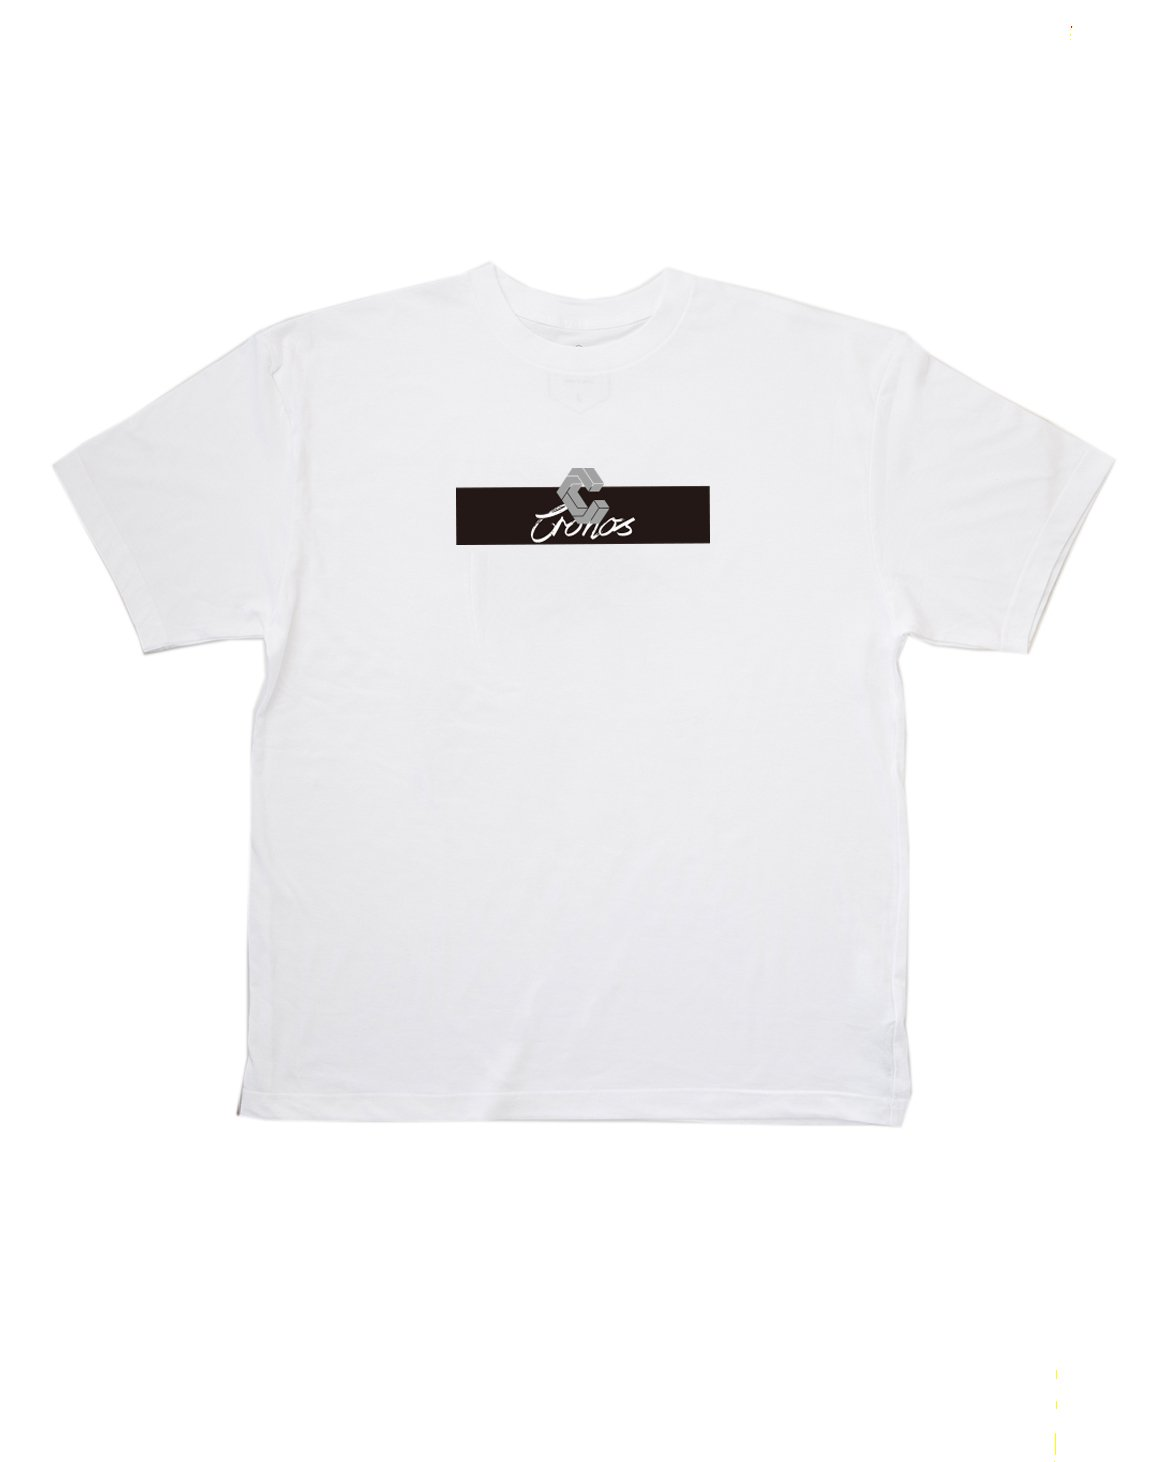 <img class='new_mark_img1' src='https://img.shop-pro.jp/img/new/icons1.gif' style='border:none;display:inline;margin:0px;padding:0px;width:auto;' />CRONOS CURSIVE LOGO T-SHIRT【WHITE】